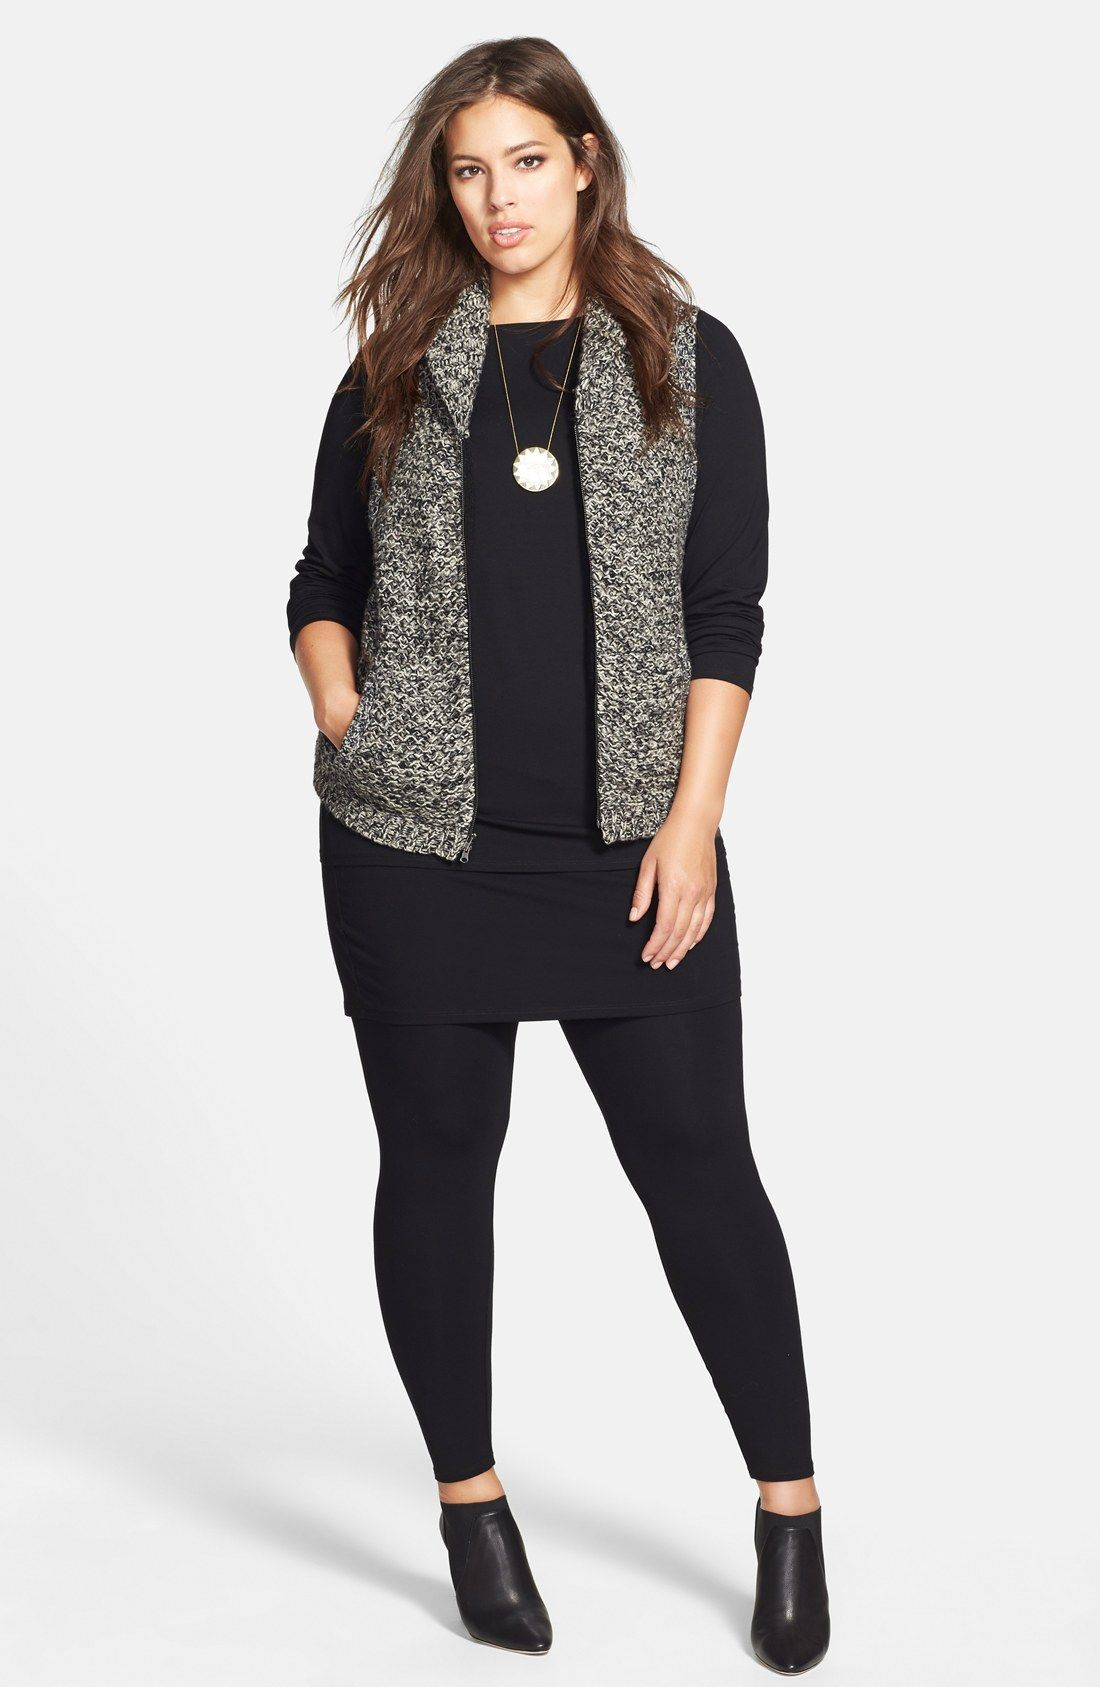 1833c10f12ce5 30s smart casual: Eileen Fisher Skirted Leggings vest - Sale! Up to 75% OFF!  Shop at Stylizio for women's and men's designer handbags, luxury  sunglasses, ...